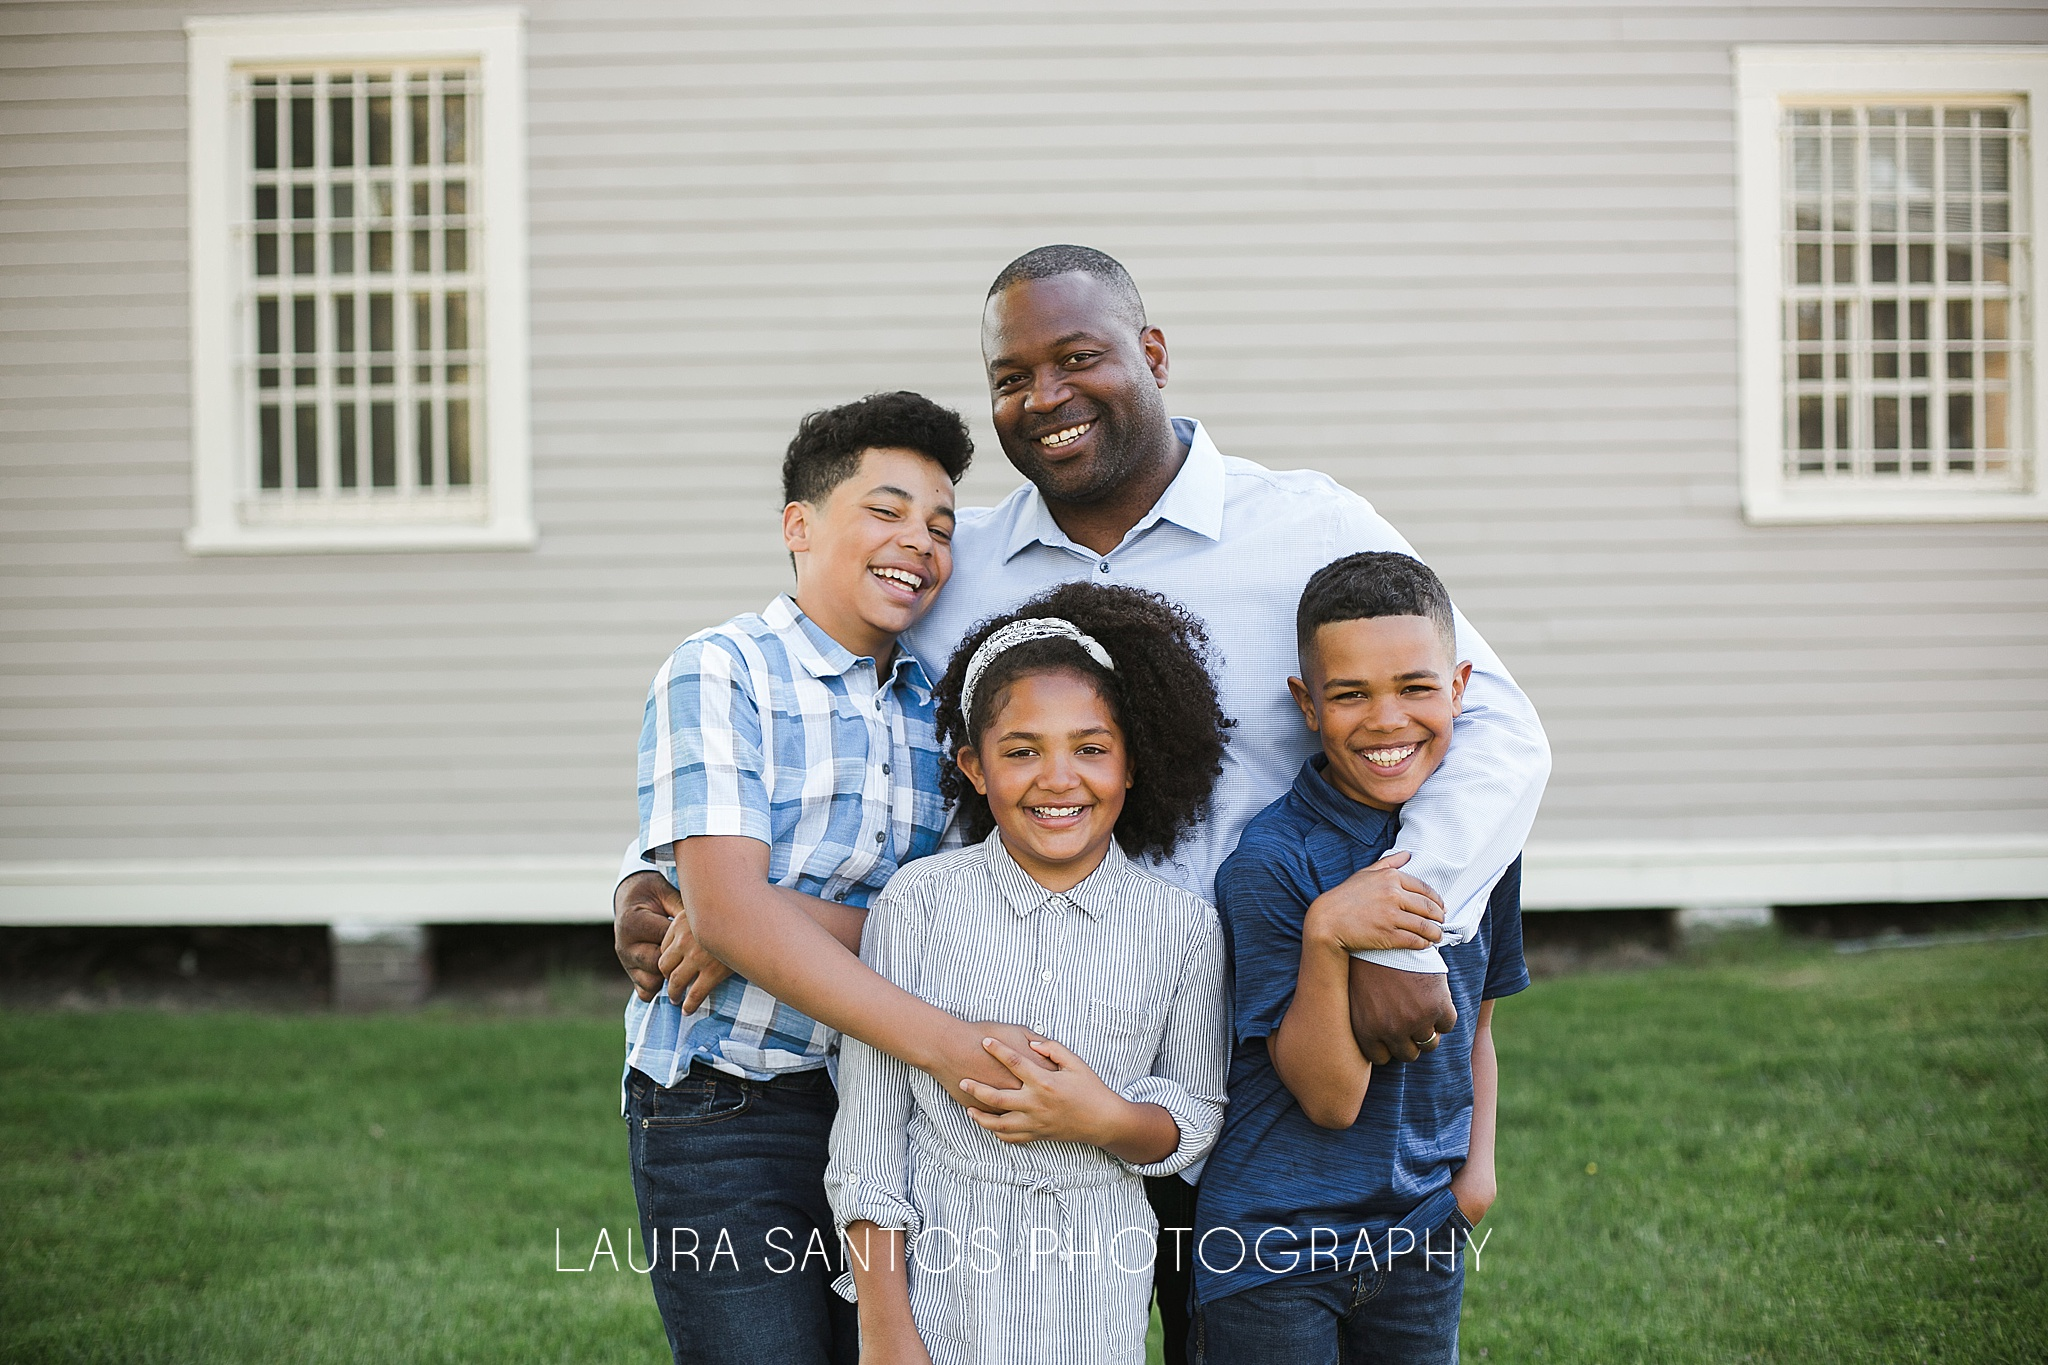 Laura Santos Photography Portland Oregon Family Photographer_0946.jpg